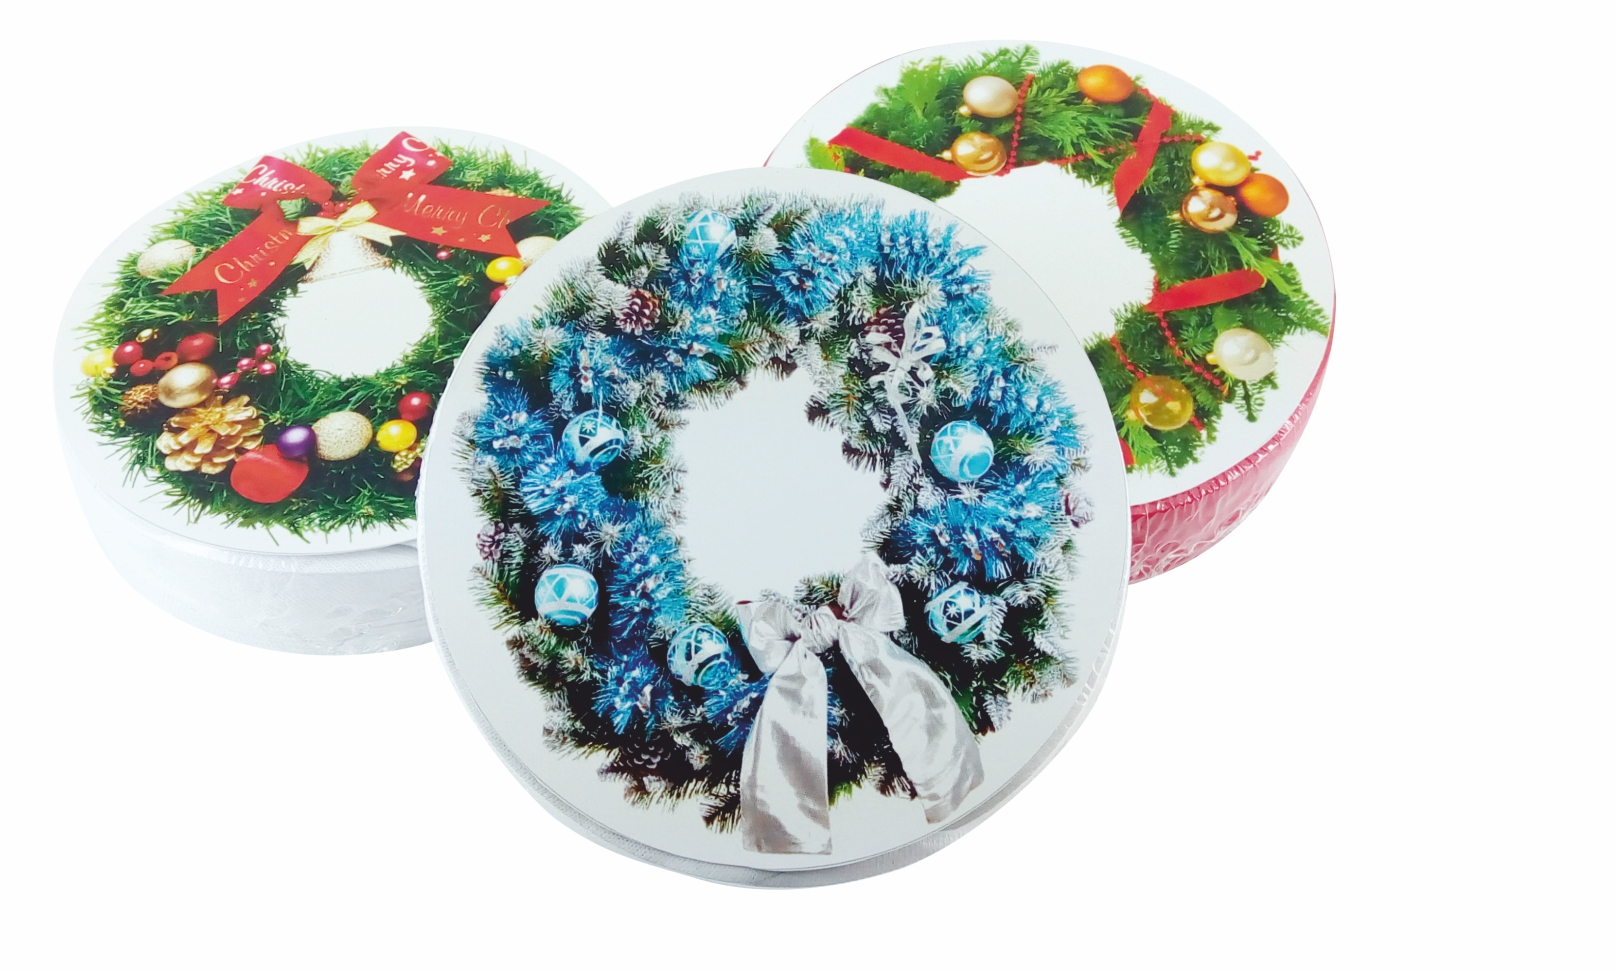 Christmas compressed T-Shirts in the Wreath shape